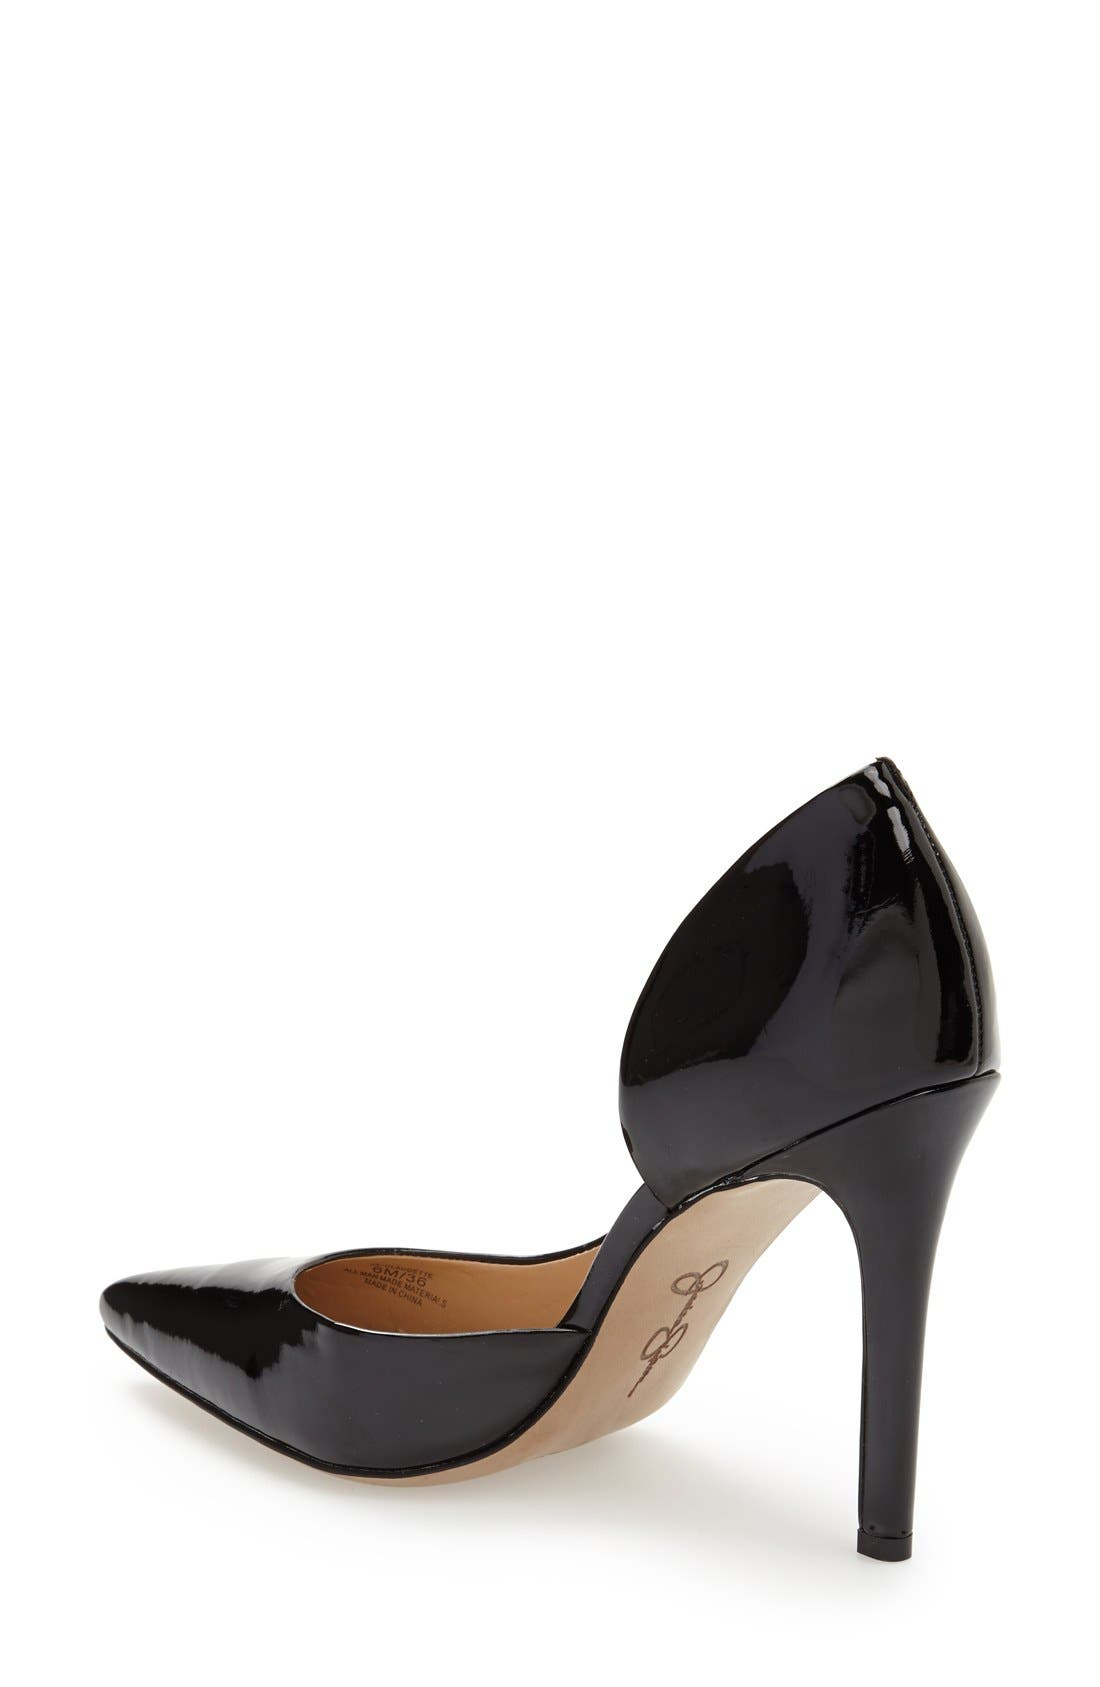 JESSICA SIMPSON,                             'Claudette' Half d'Orsay Pump,                             Alternate thumbnail 2, color,                             001